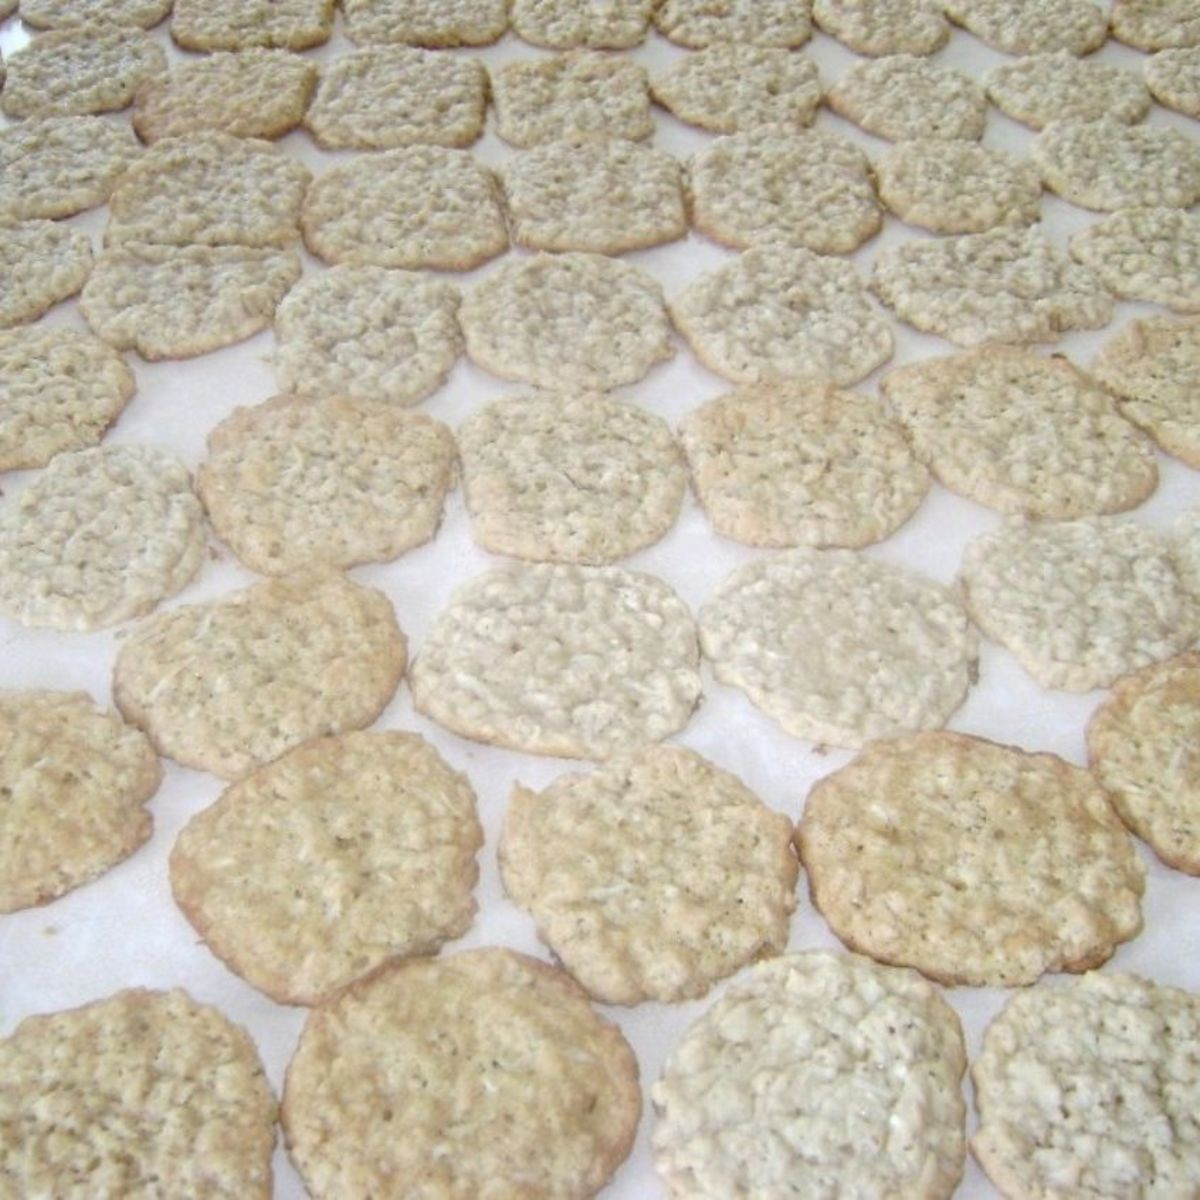 Homemade oatmeal cookies are a dessert rich in healthy soluble fiber.